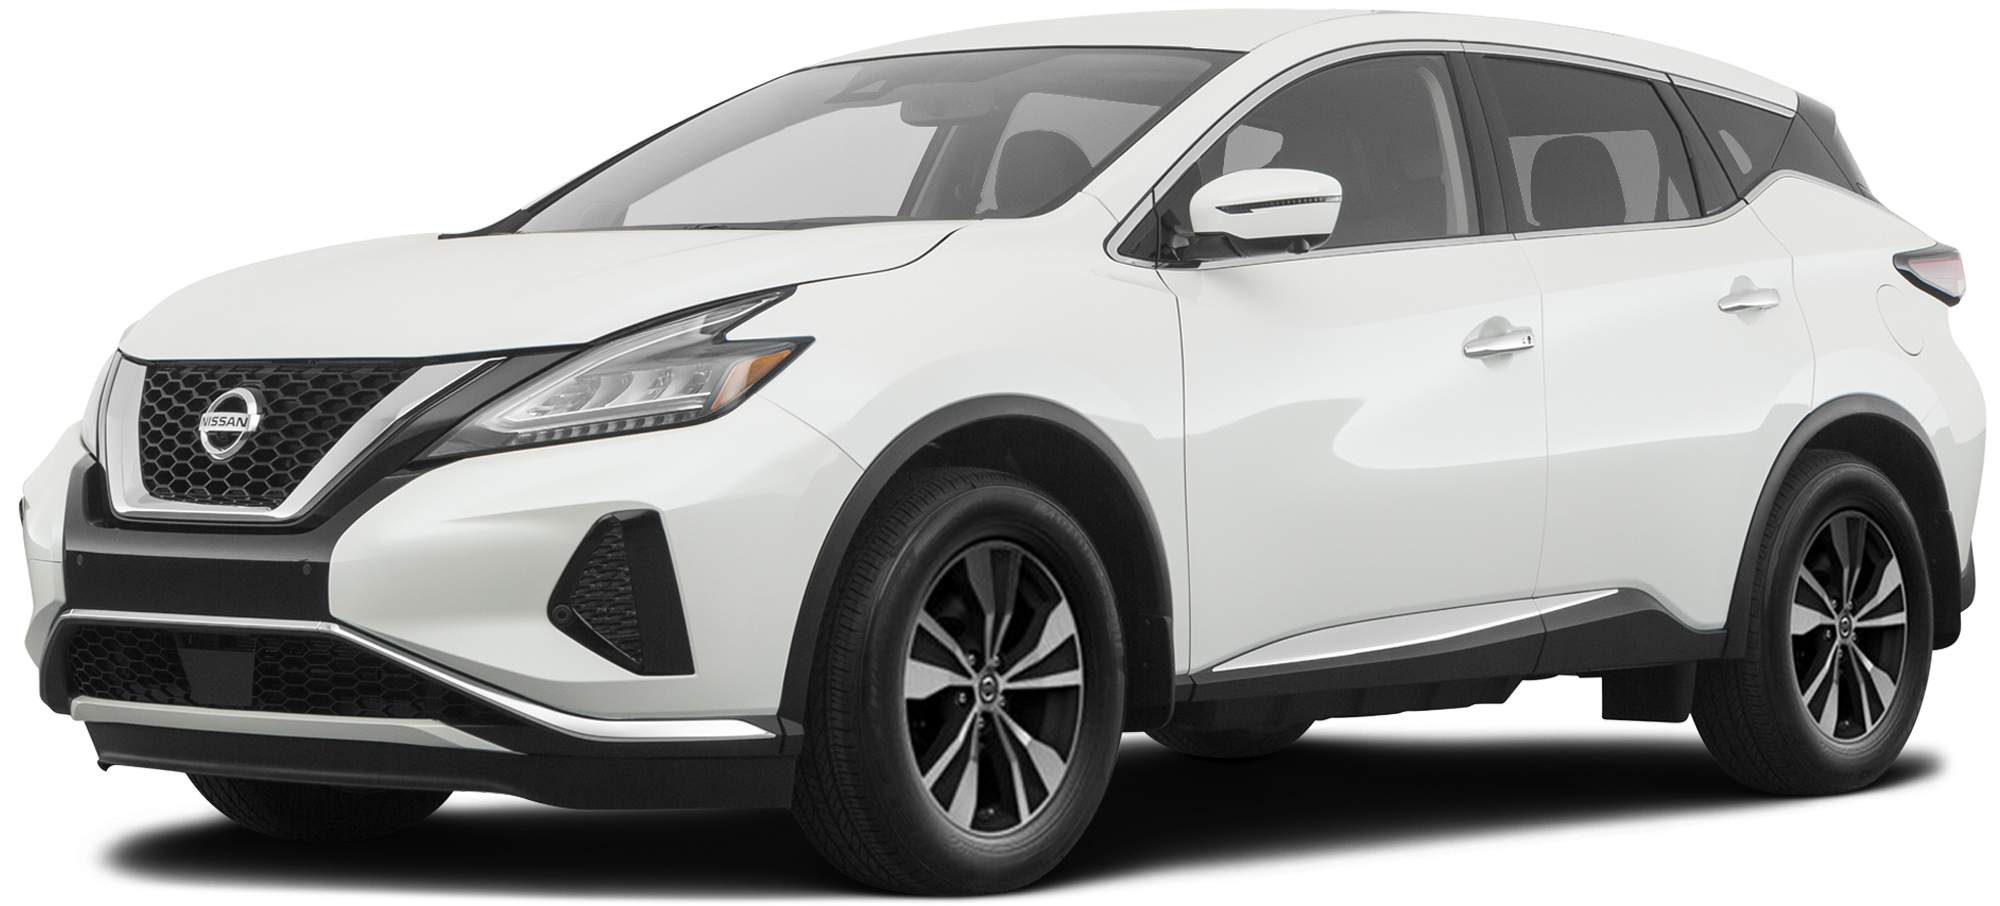 2019 Nissan Murano Incentives, Specials & Offers in Prince